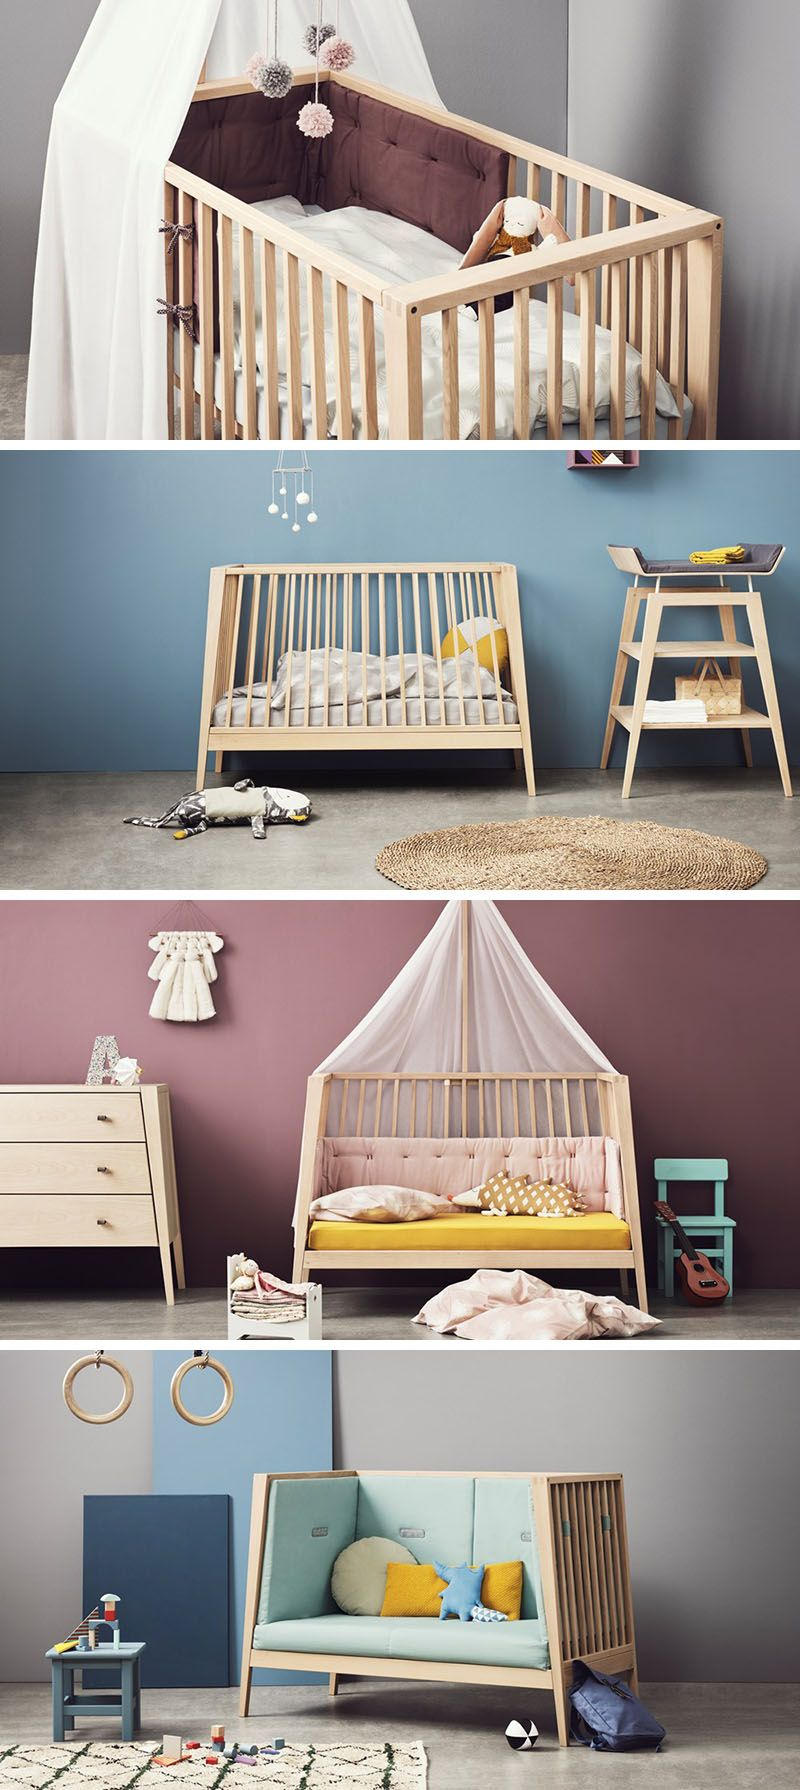 This transitional modern nursery furniture is baby cot that transforms into a small day bed or couch as the child grows